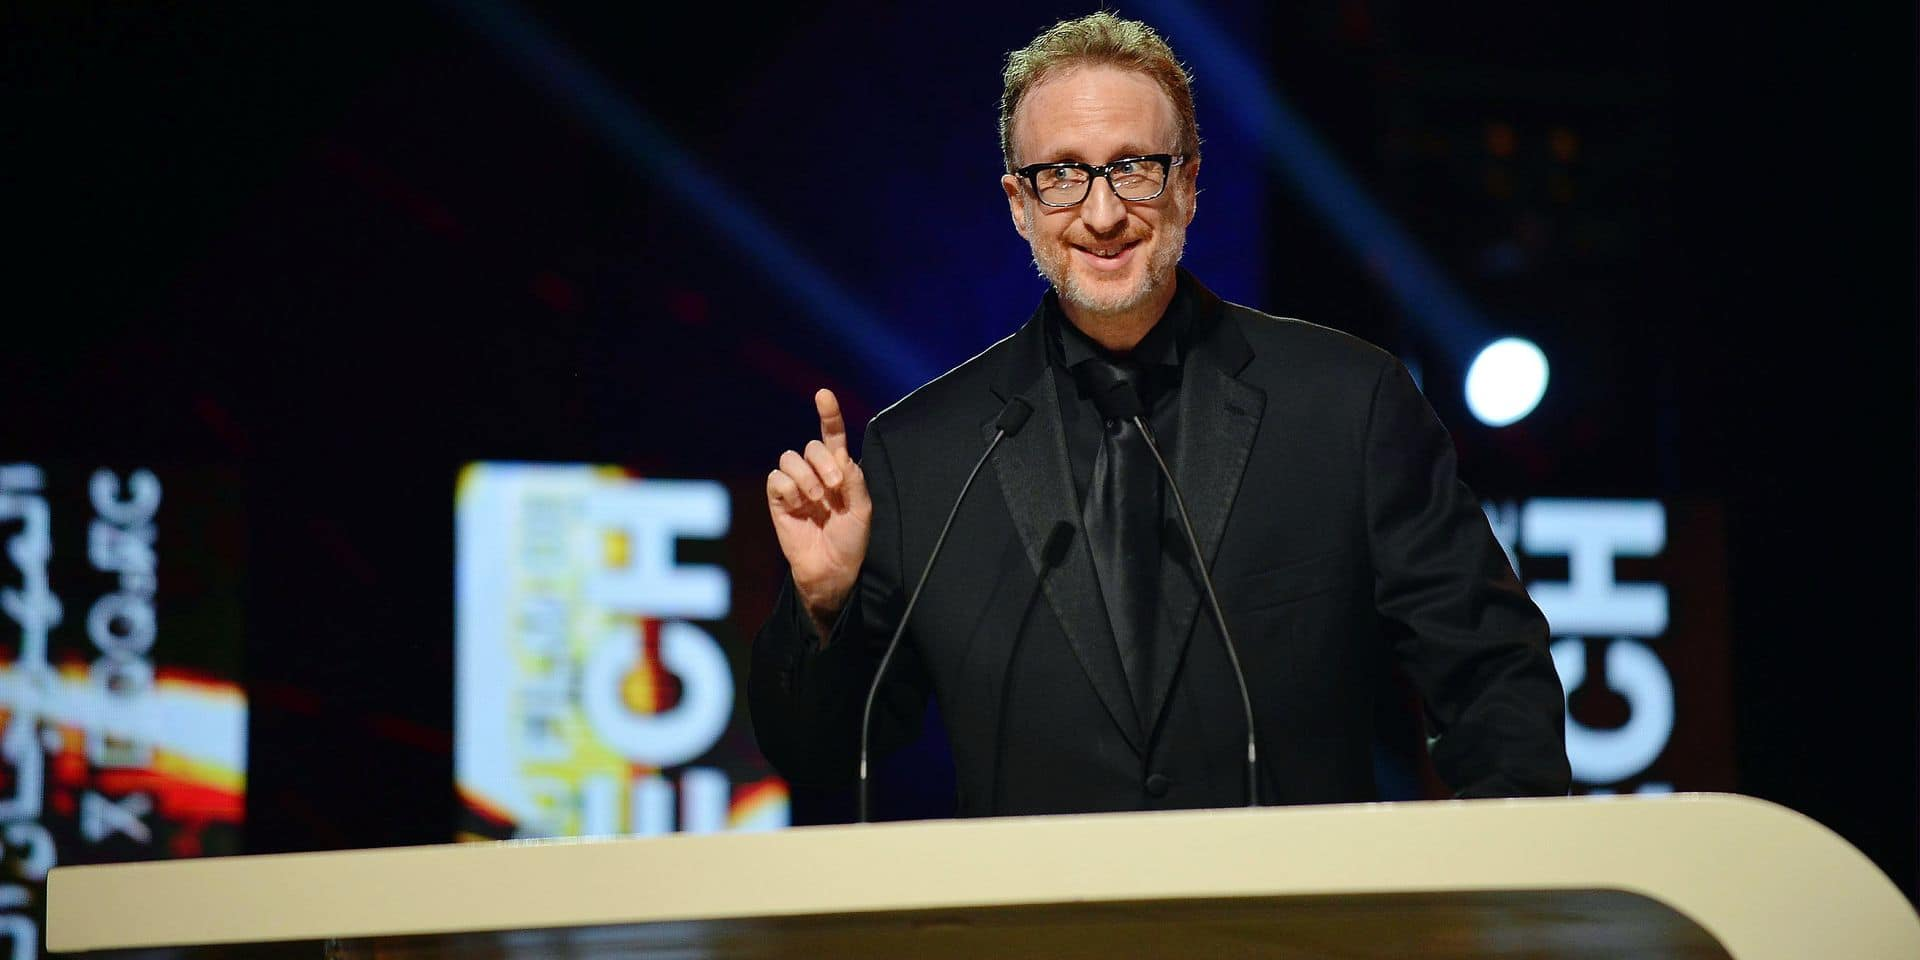 (181201) -- MARRAKECH, Dec. 1, 2018 () -- Jury President James Gray addresses the opening ceremony of the Marrakech International Film festival in Marrakech, Morocco, Nov. 30, 2018. The 17th edition of Marrakesh International Film Festival kicked off on Friday night in the presence of numerous stars from Morocco, Arab region and the world. (/Aissa) (yy) Reporters / Photoshot